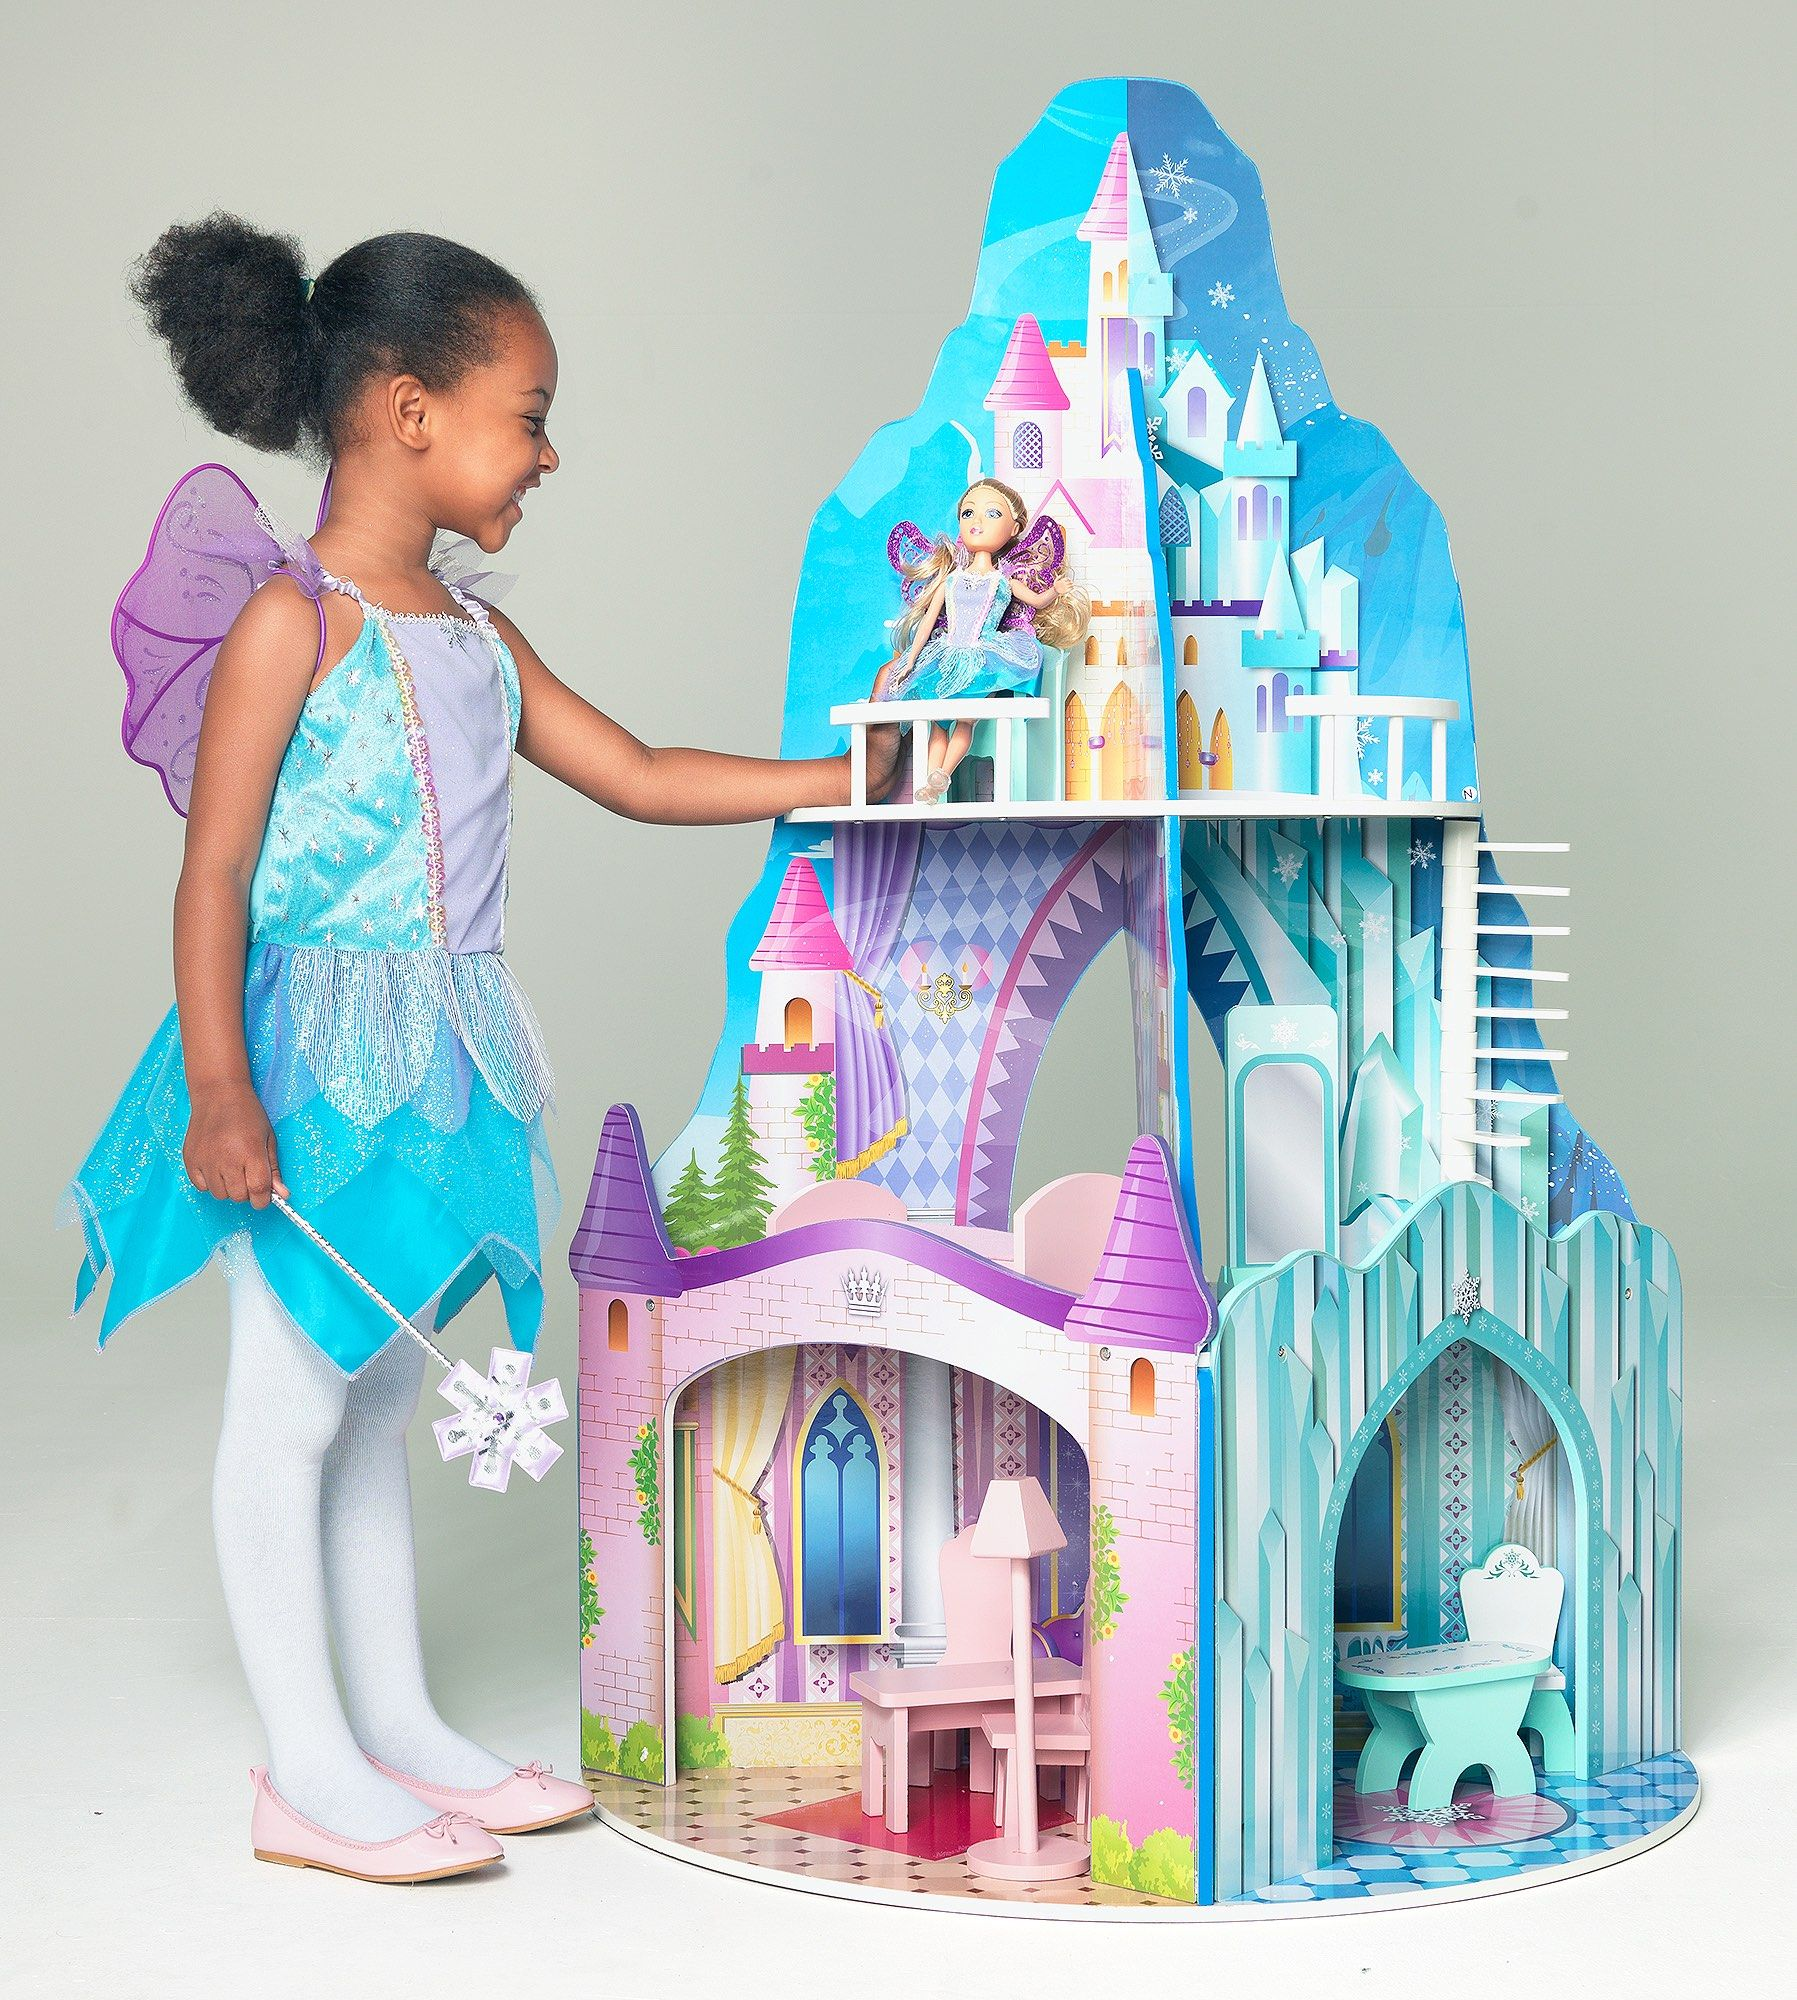 Dolls house at argos co uk your online shop for dolls houses dolls - The Chad Valley Summer Winter Dolls House Gives Your Little One The Choice To Create Imaginative